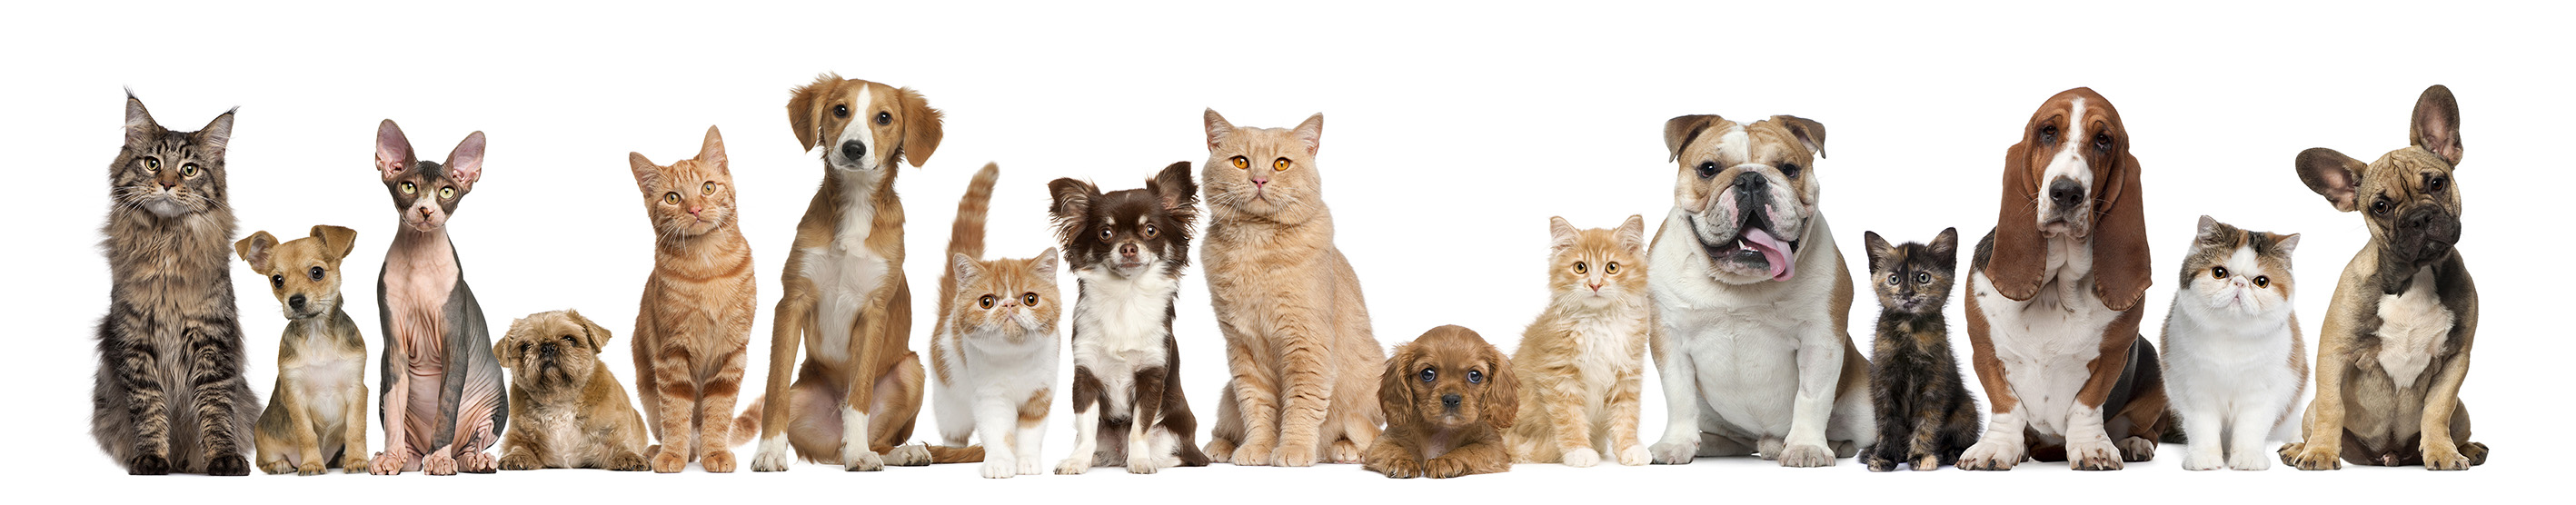 Group of cats and dogs in front of white background at Hi Five Boarding Kennels Perth